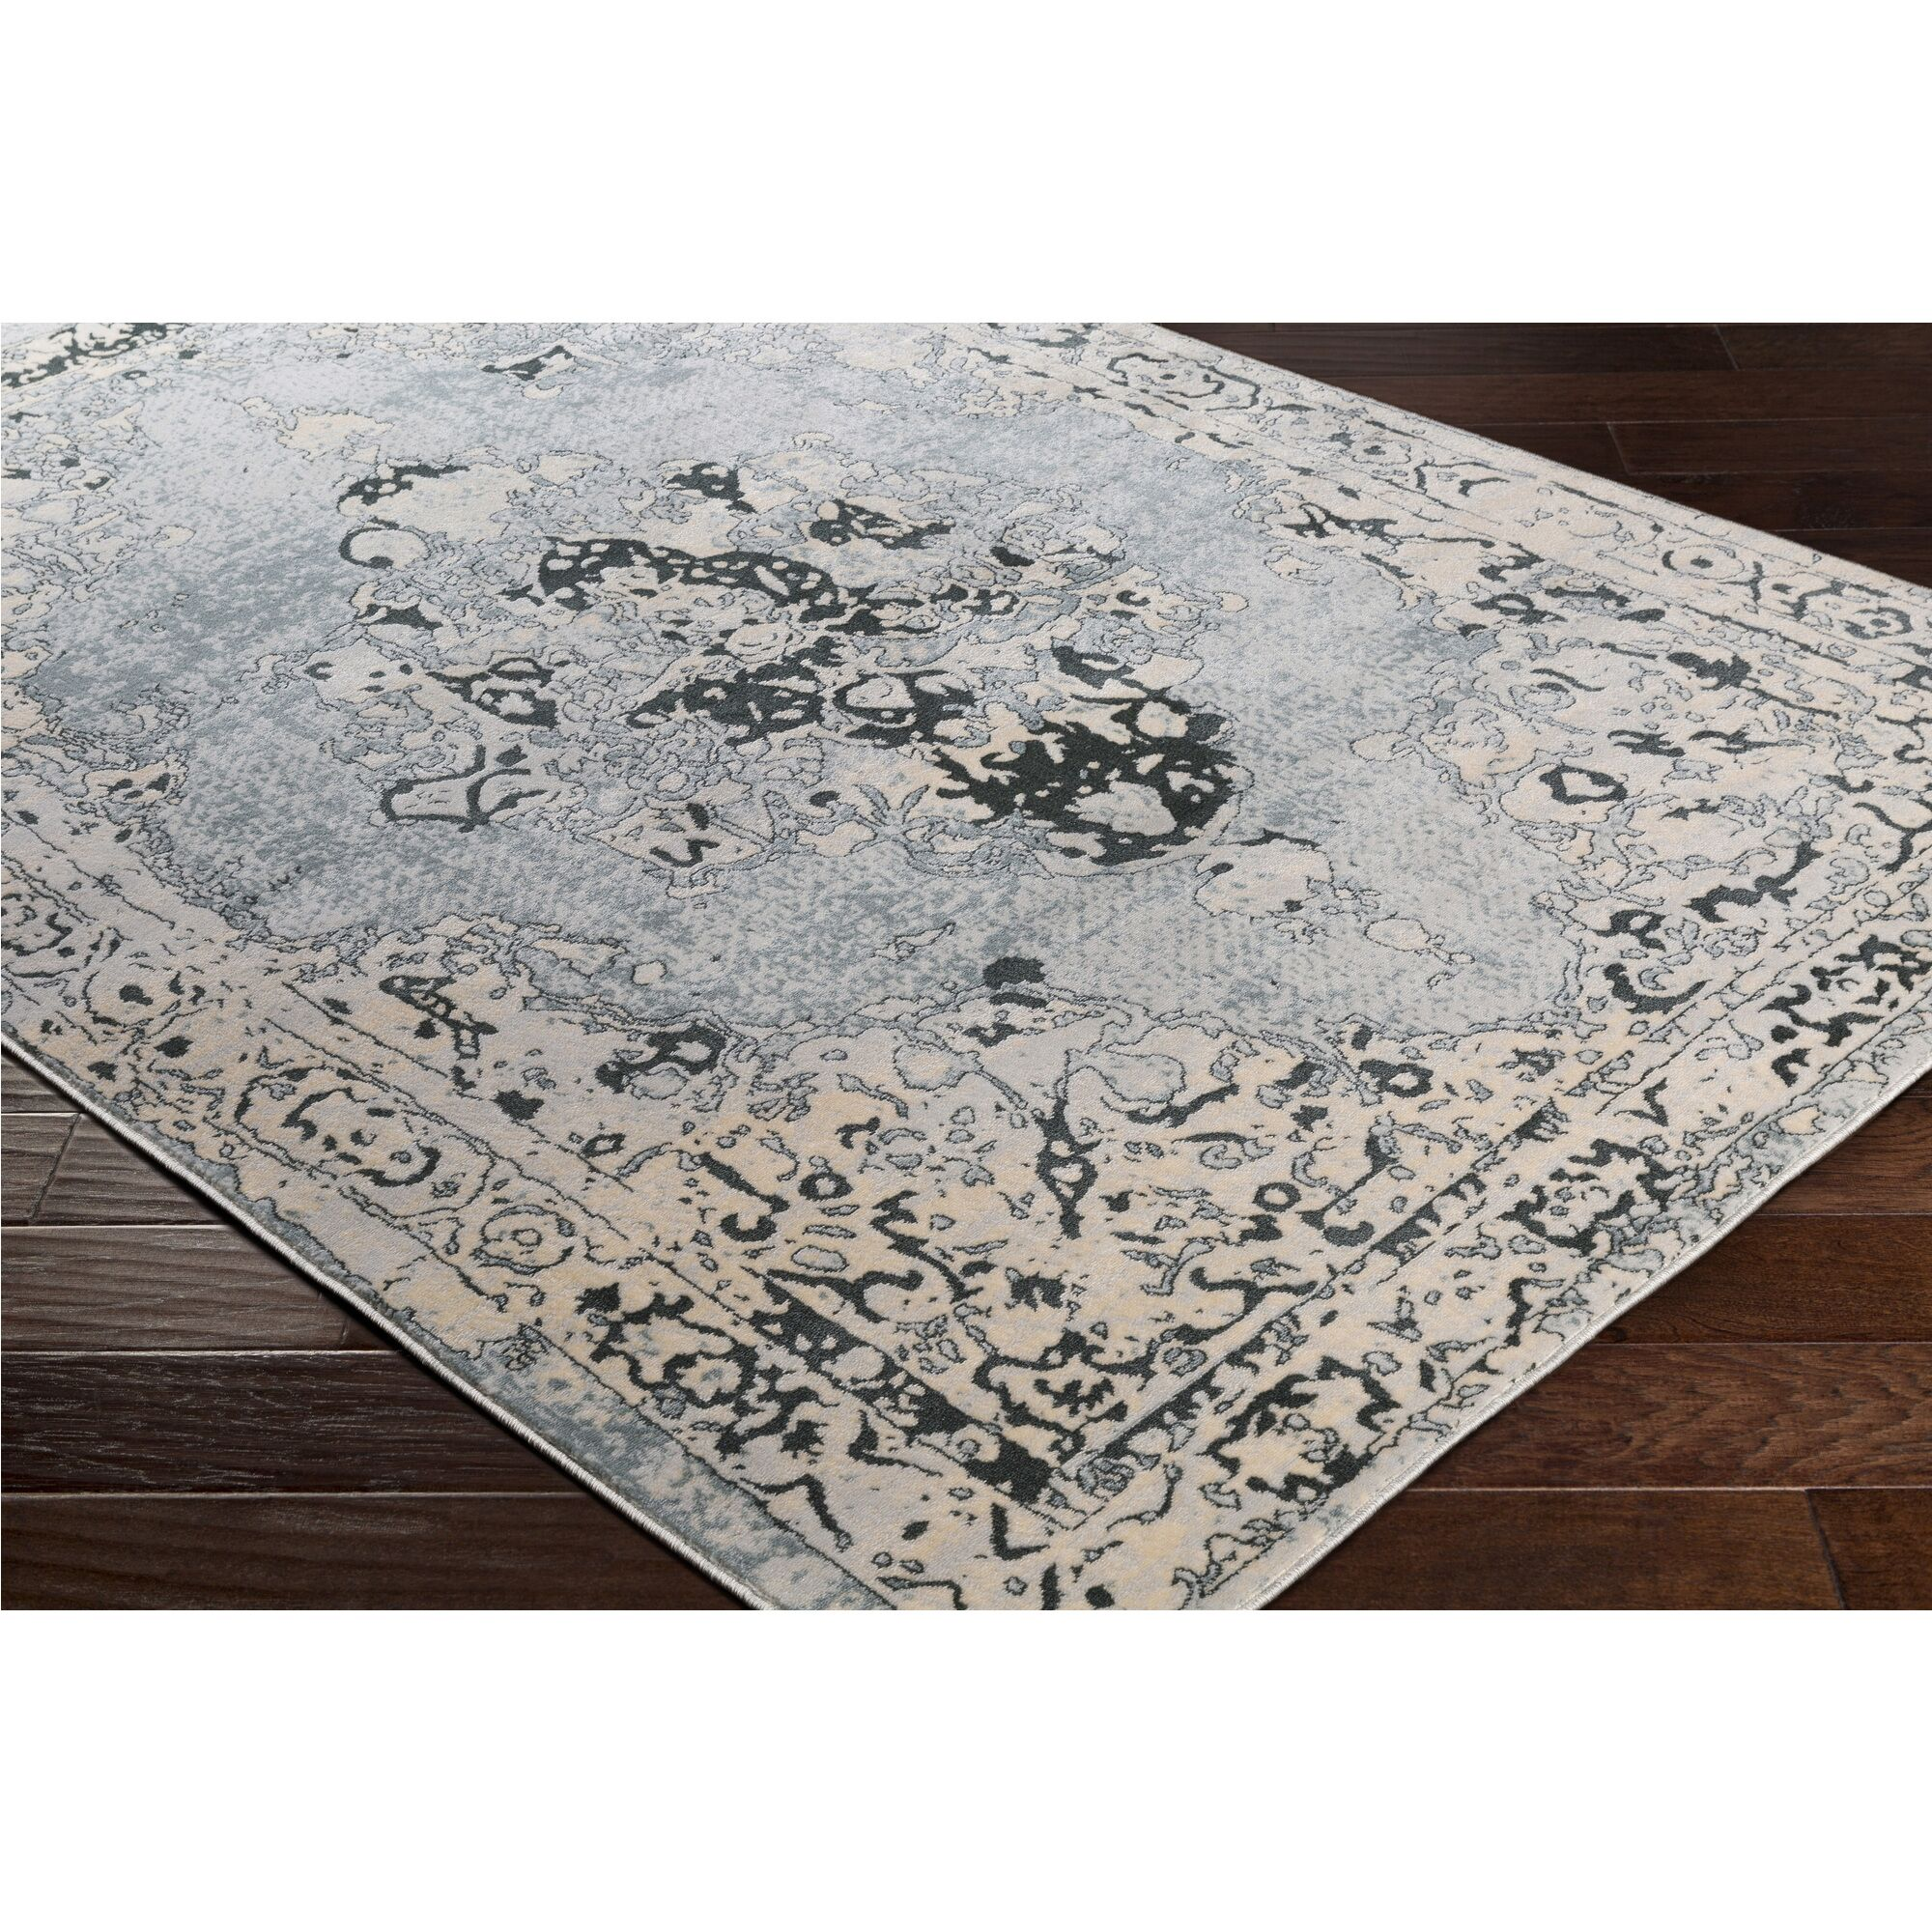 Synthia Blue/Cream Area Rug Rug Size: Rectangle 7'10